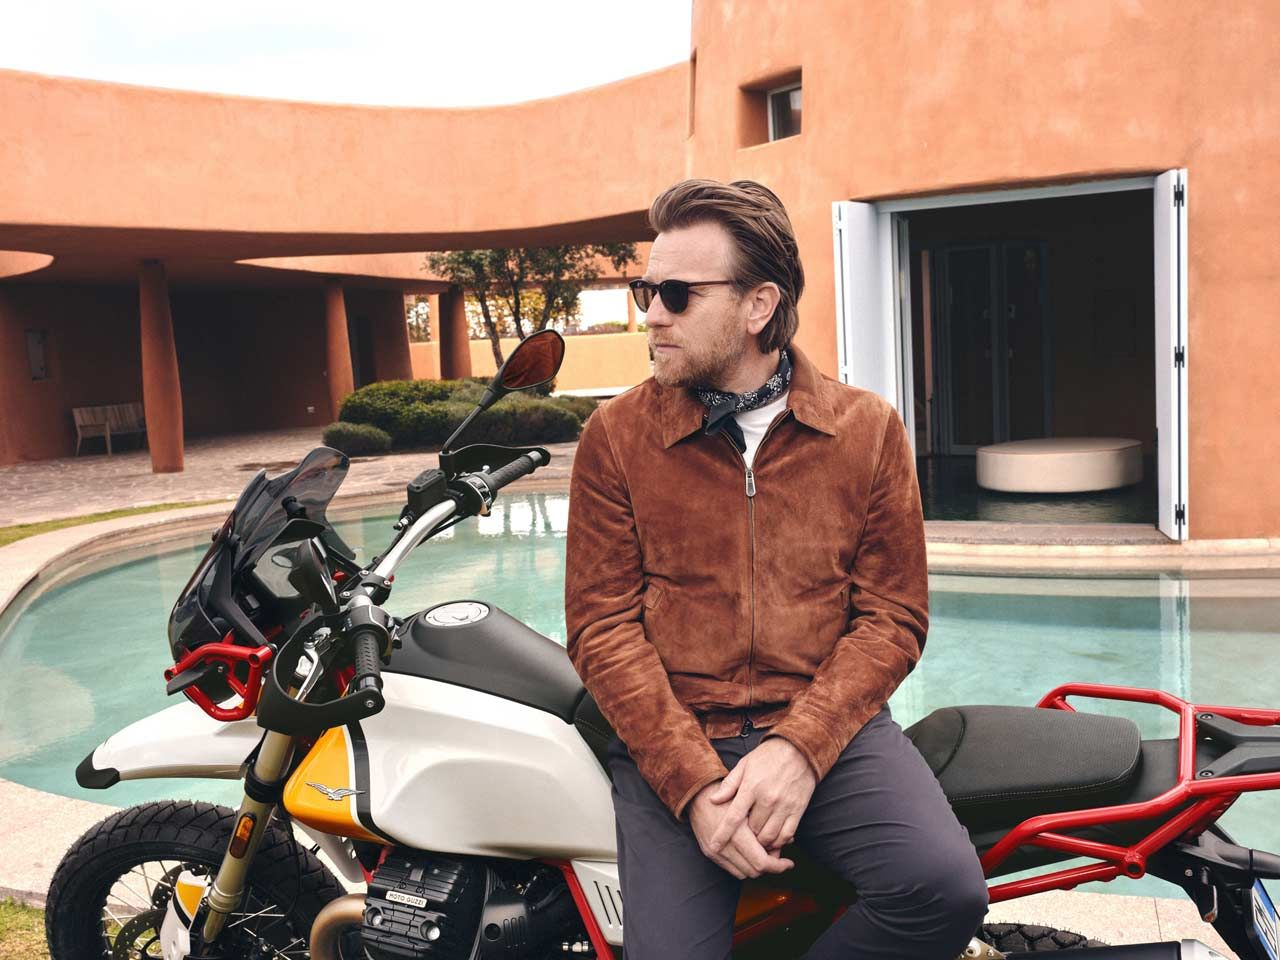 HOLLYWOOD STAR EWAN MCGREGOR IS THE AMBASSADOR FOR THE